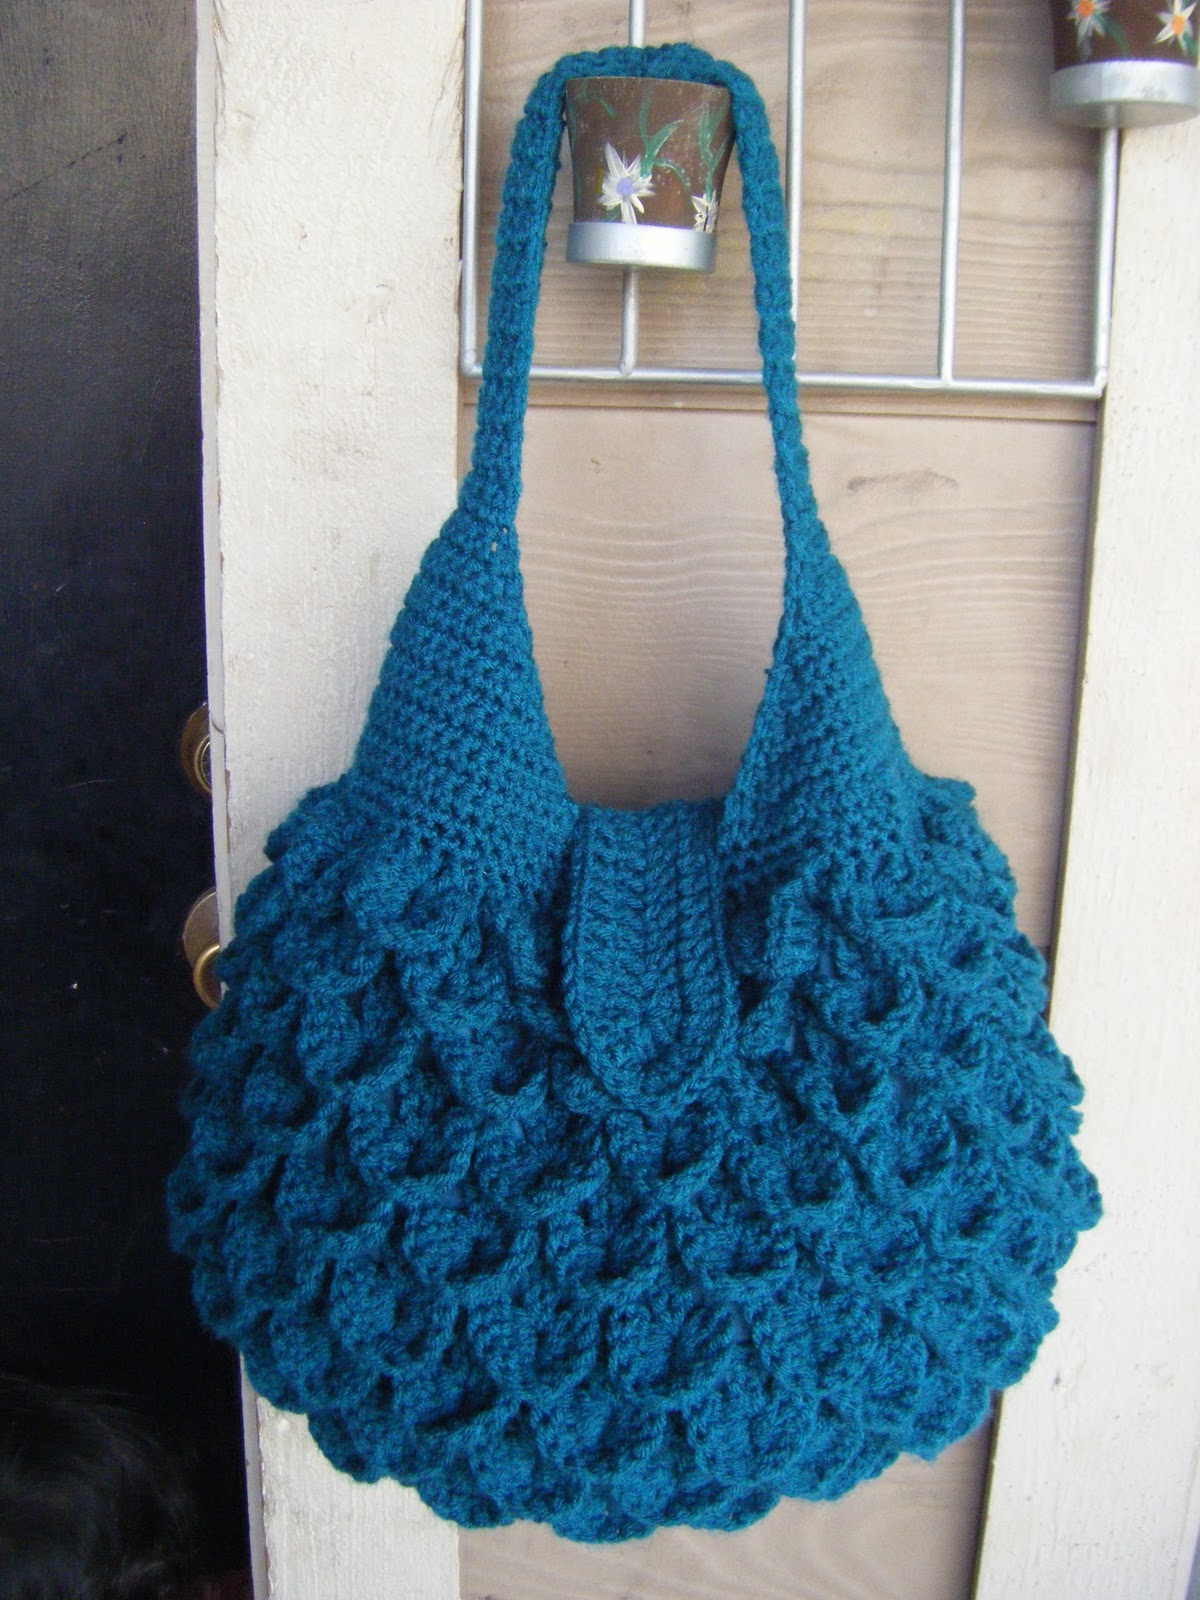 Crochet Purse Patterns Free : Hip Hobo Bag - Christmas Crafts, Free Knitting Patterns, Free